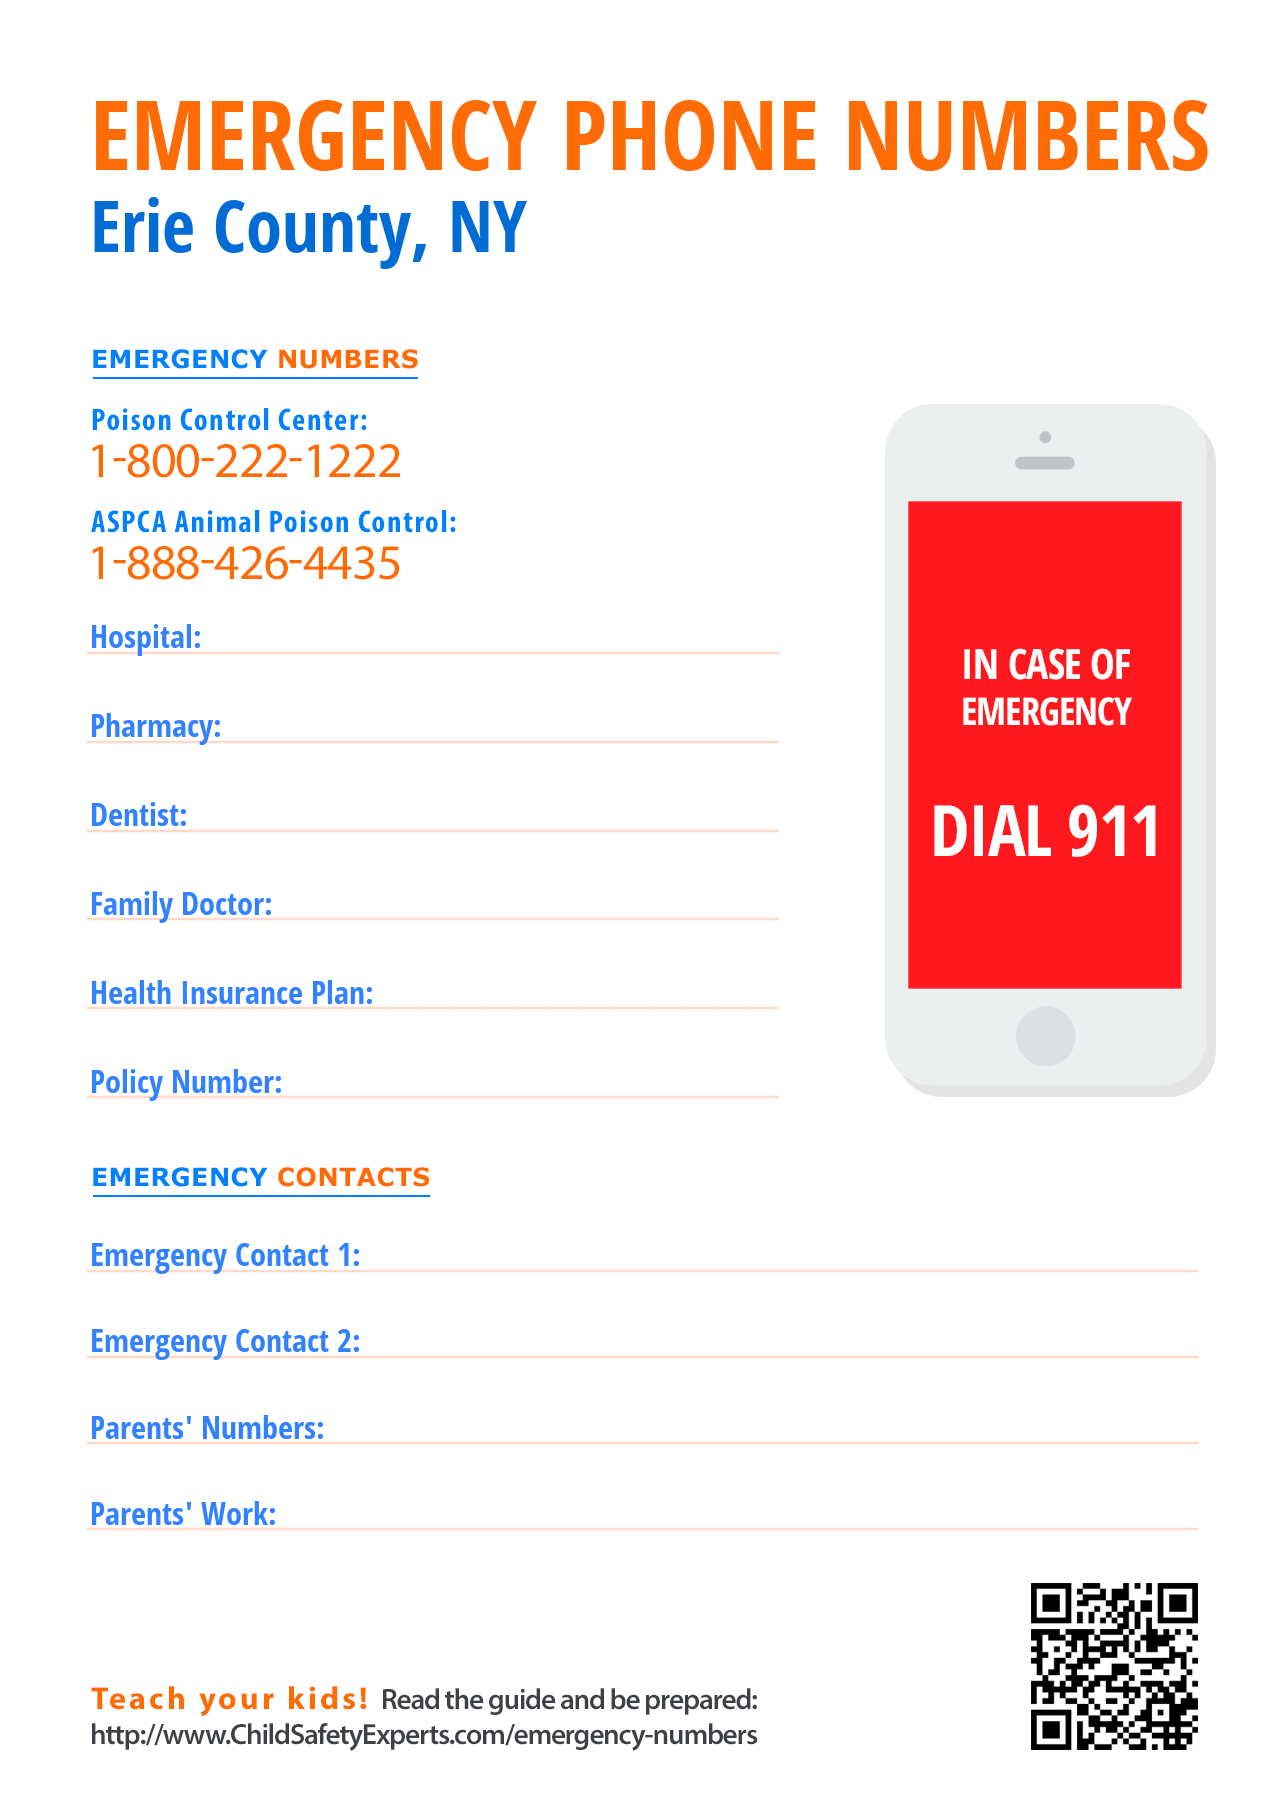 Important emergency phone numbers in Erie County, New York